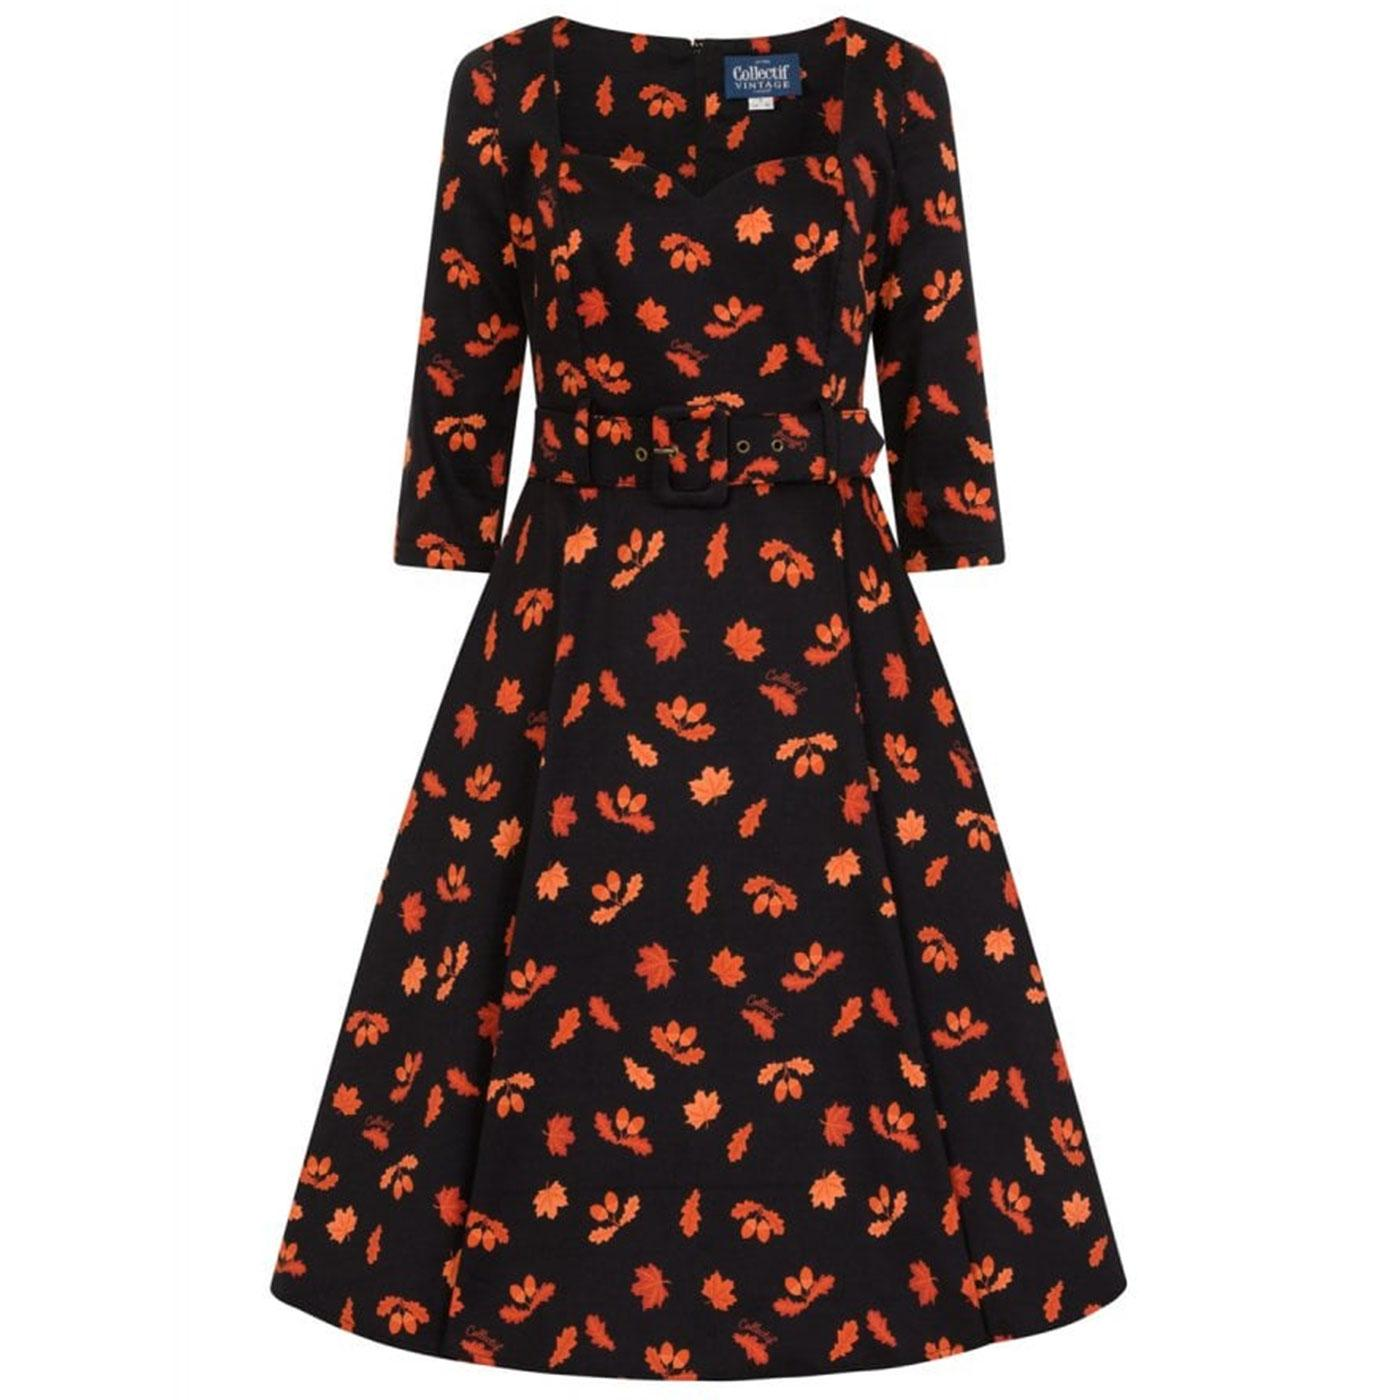 Eliana COLLECTIF Retro 50s Acorn Print Swing Dress